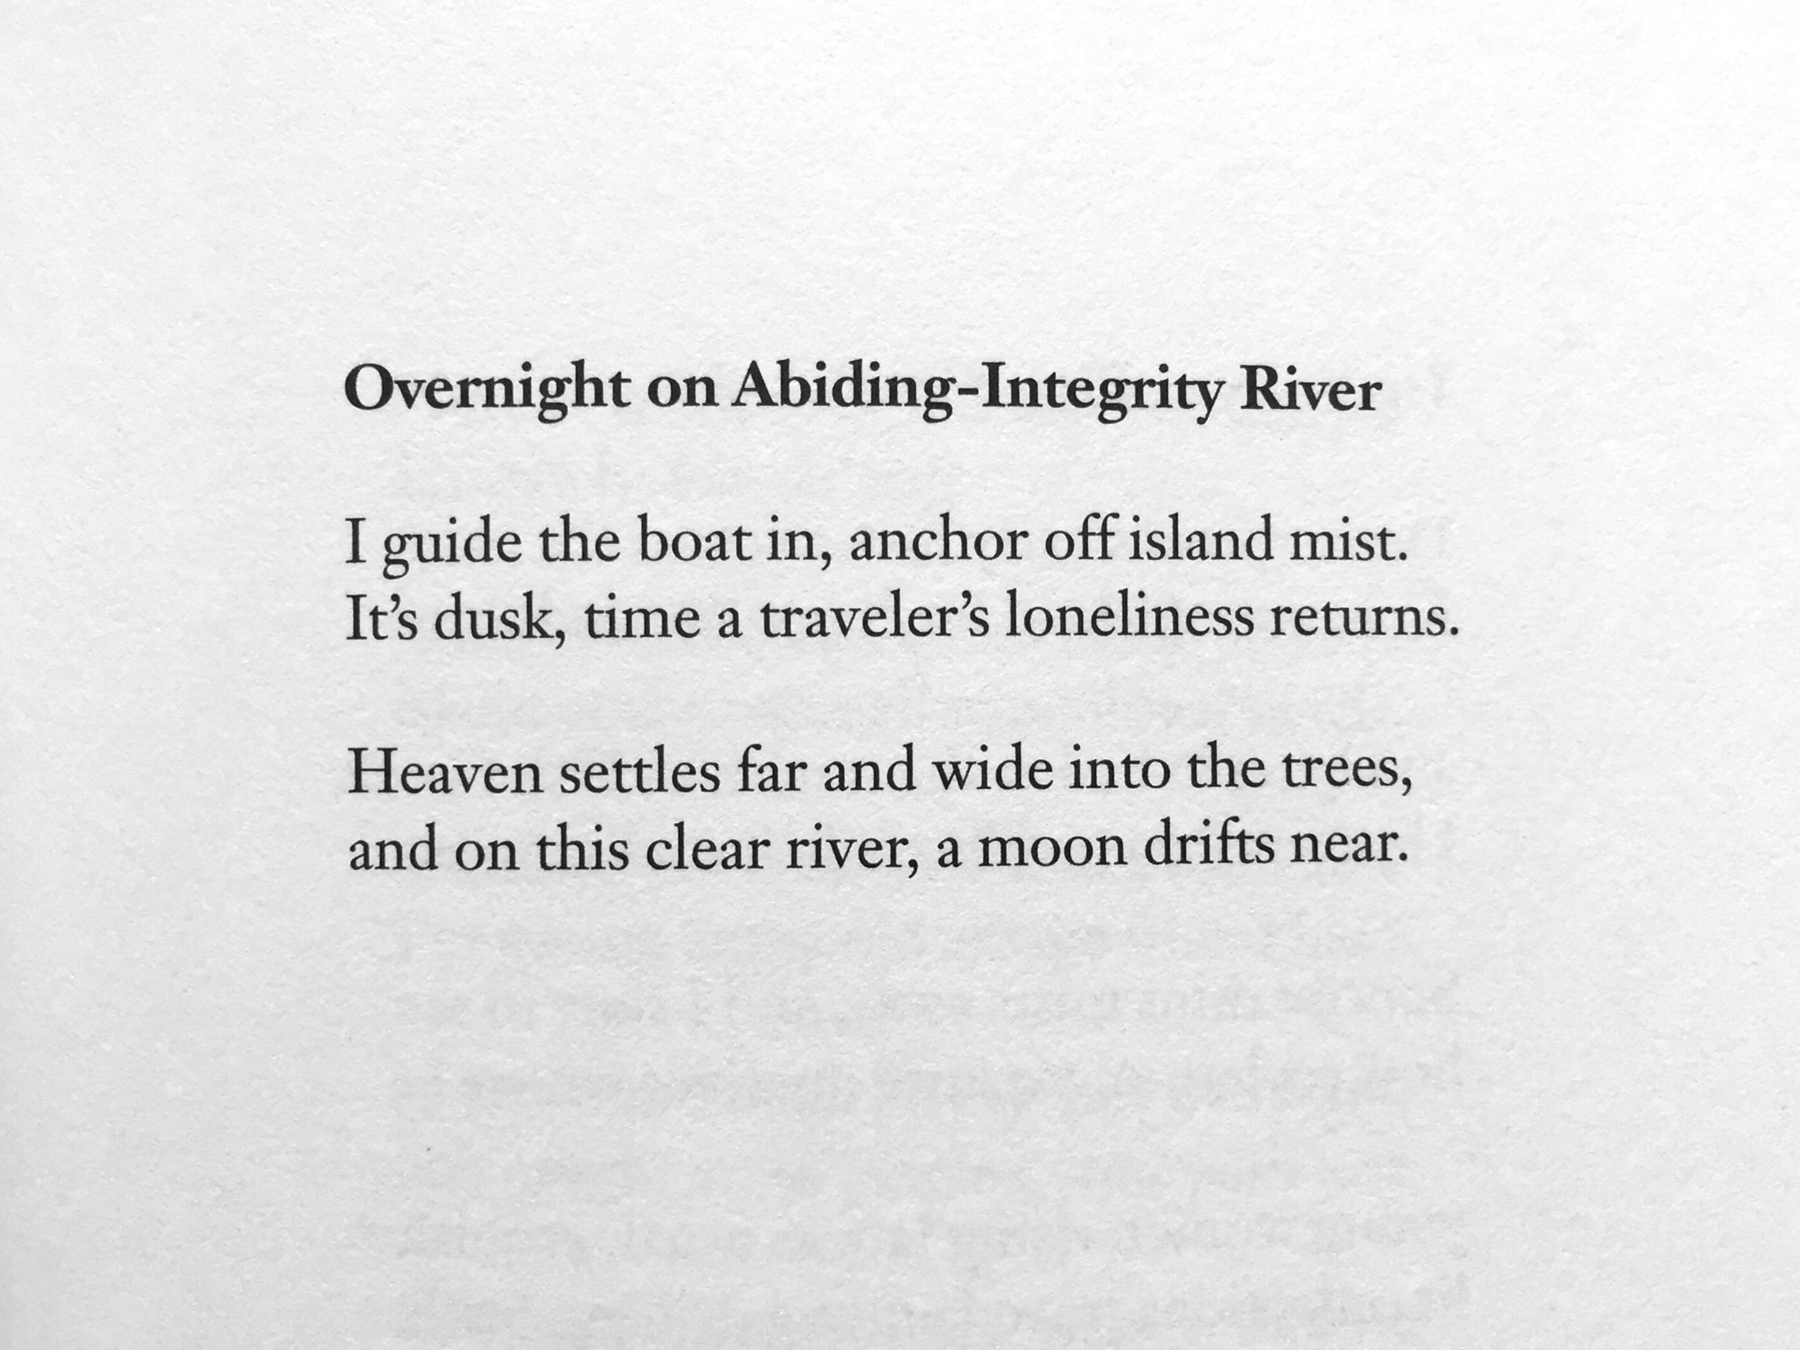 The poem: a transporting little poem by Meng Hao-jan that's been resonating since the 8th century.